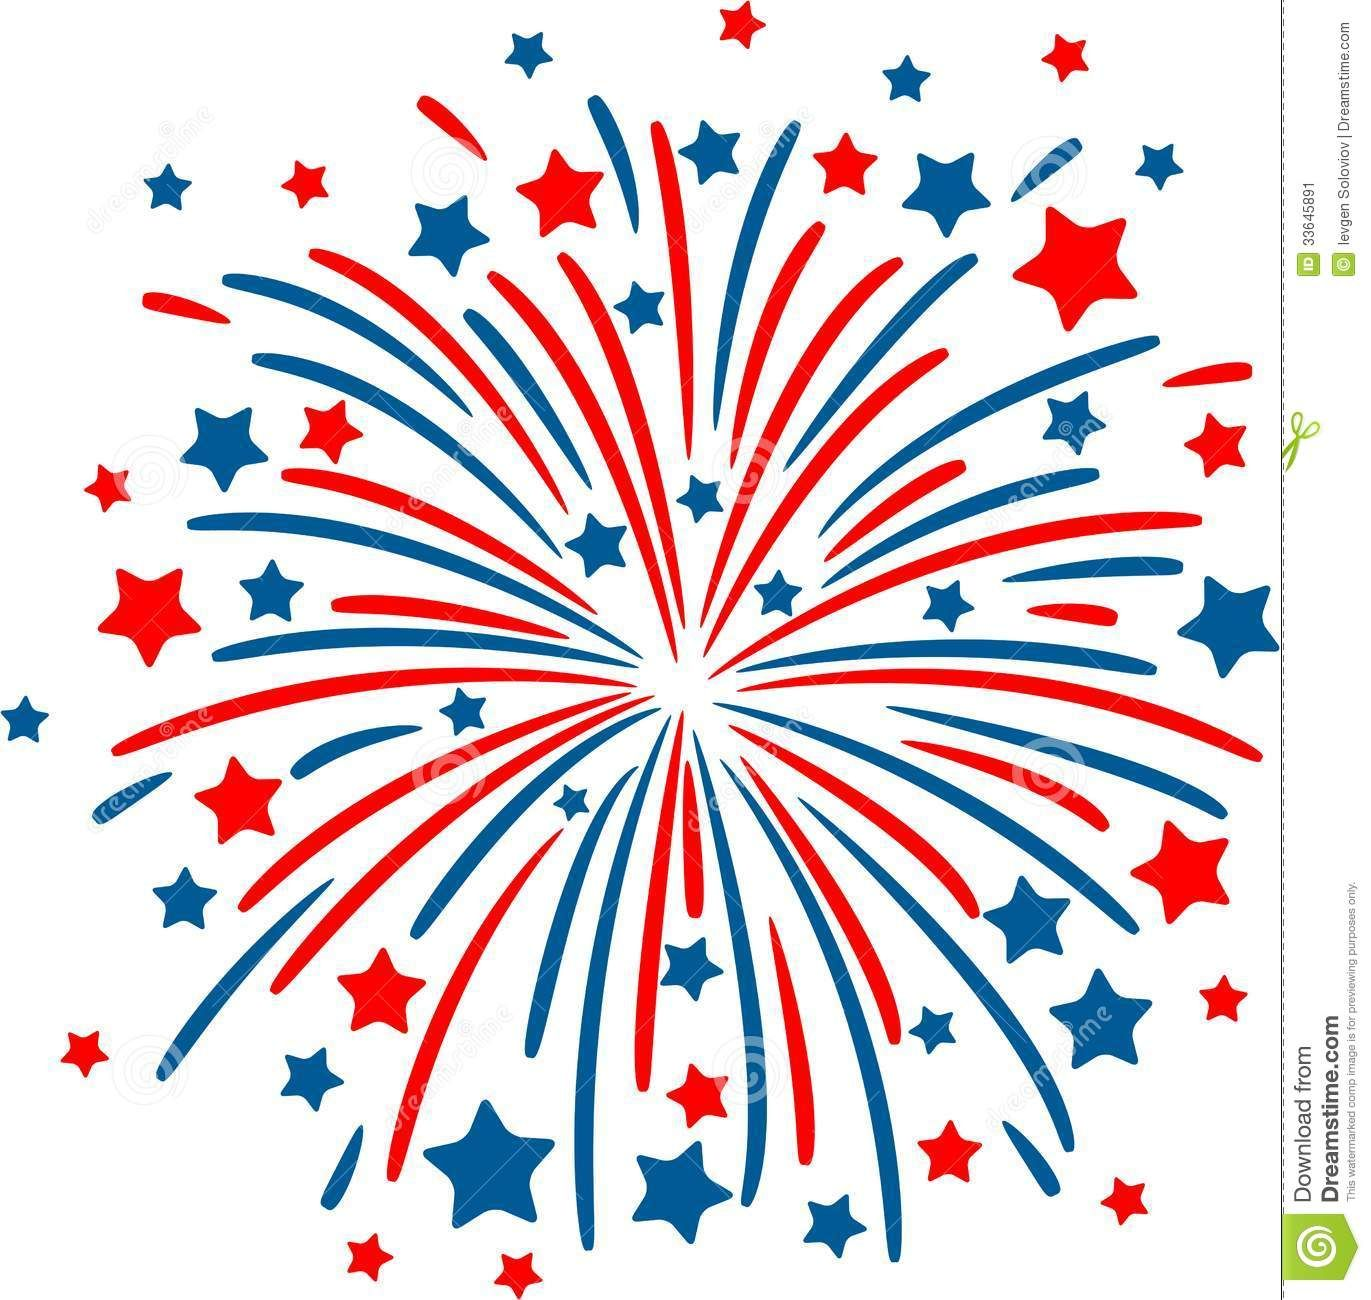 medium resolution of fireworks clipart no background clipart panda free clipart images